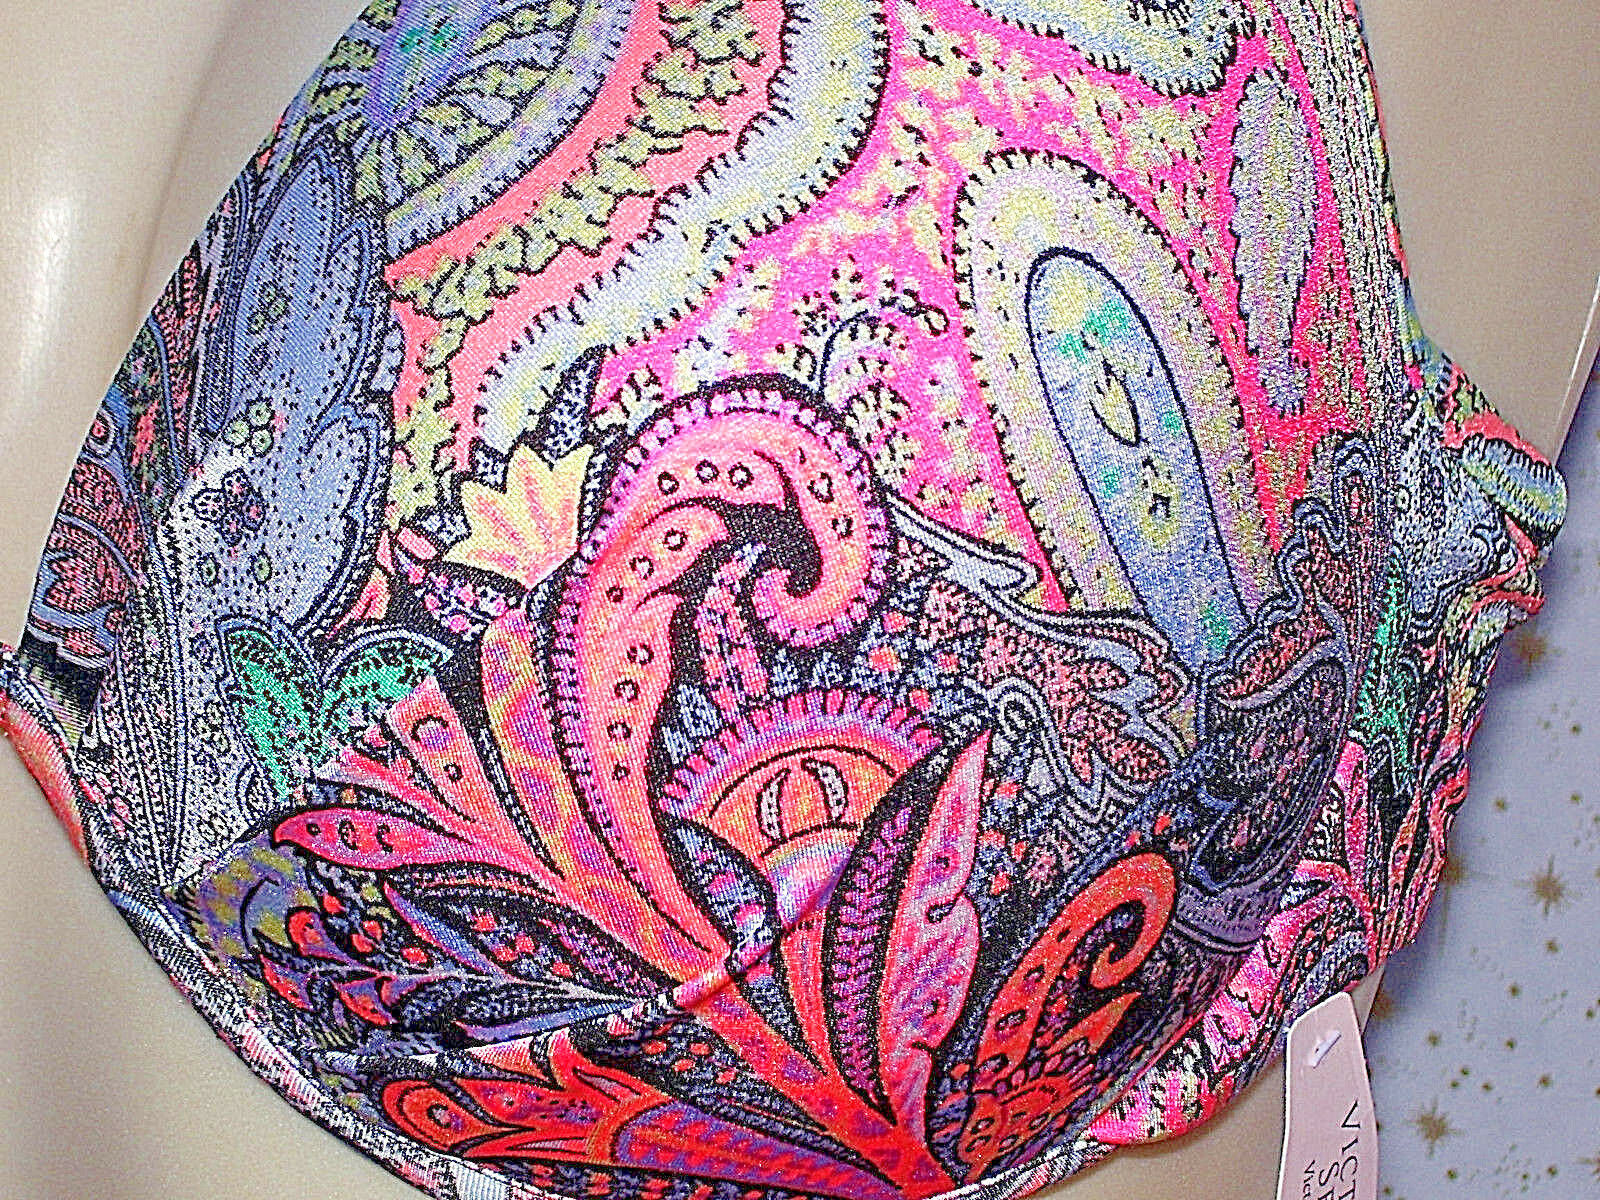 Victoria's Secret PAISLEY Bikini The Fabulous SWIM SWIM SWIM Top 36DD Padded New w Tag VS 783dd3